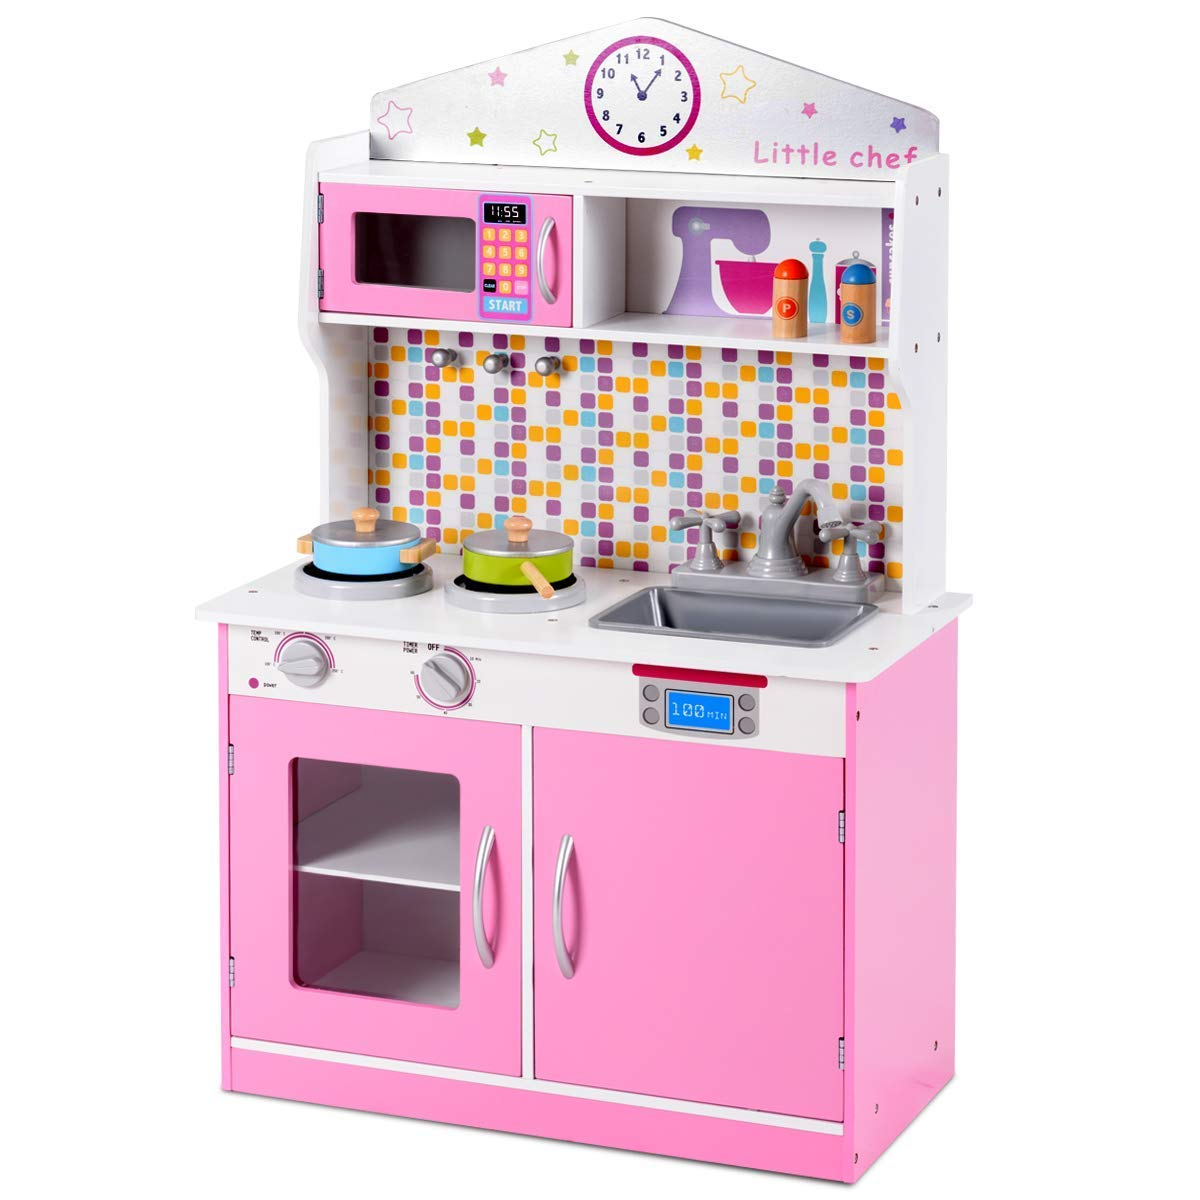 Amazon.com: BeUniqueToday Kids Wooden Pretend Cooking Play ...